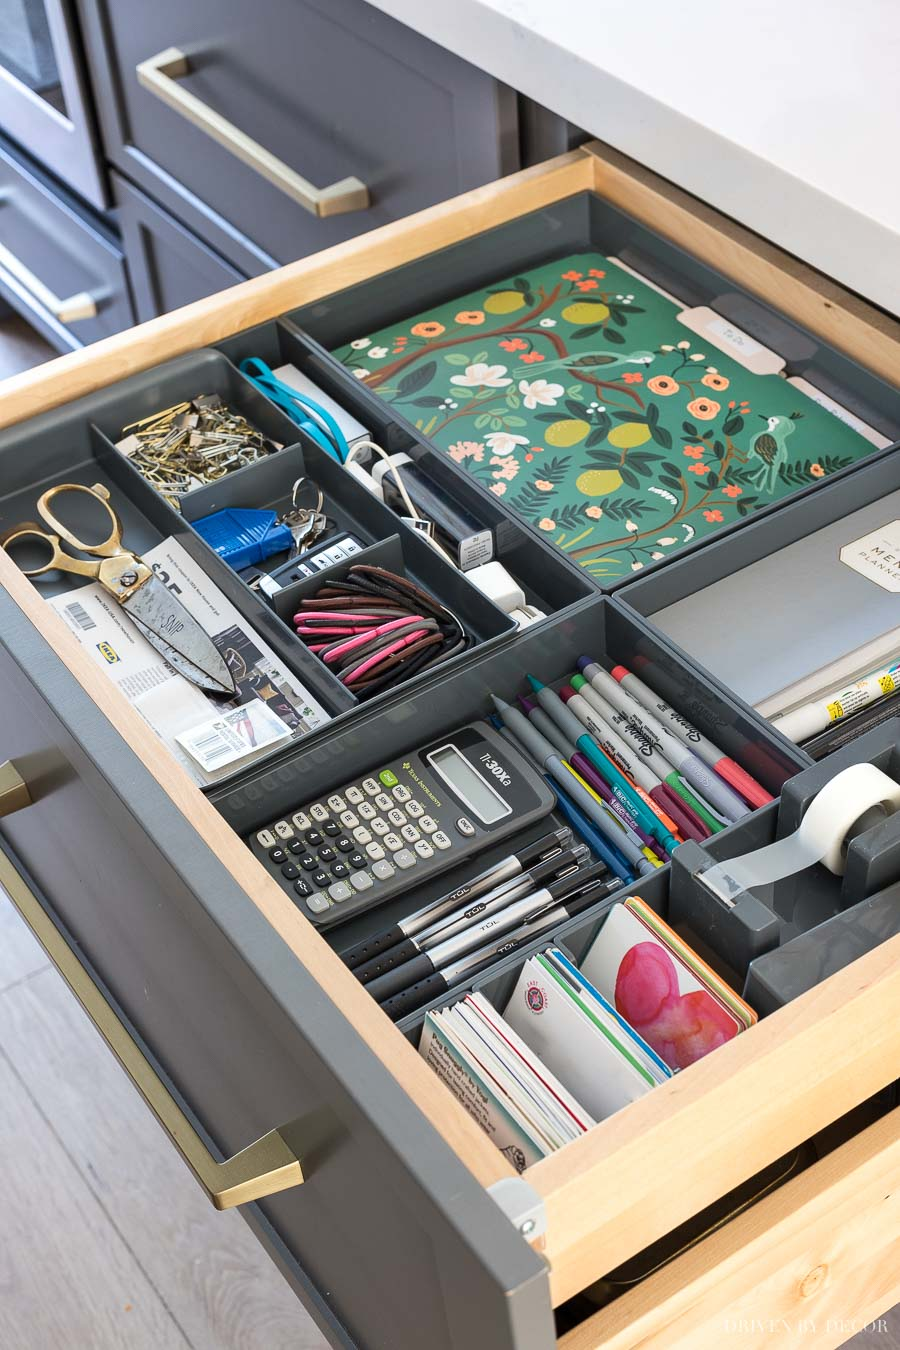 So smart! Hidden kitchen command center organized in a shallow kitchen drawer!